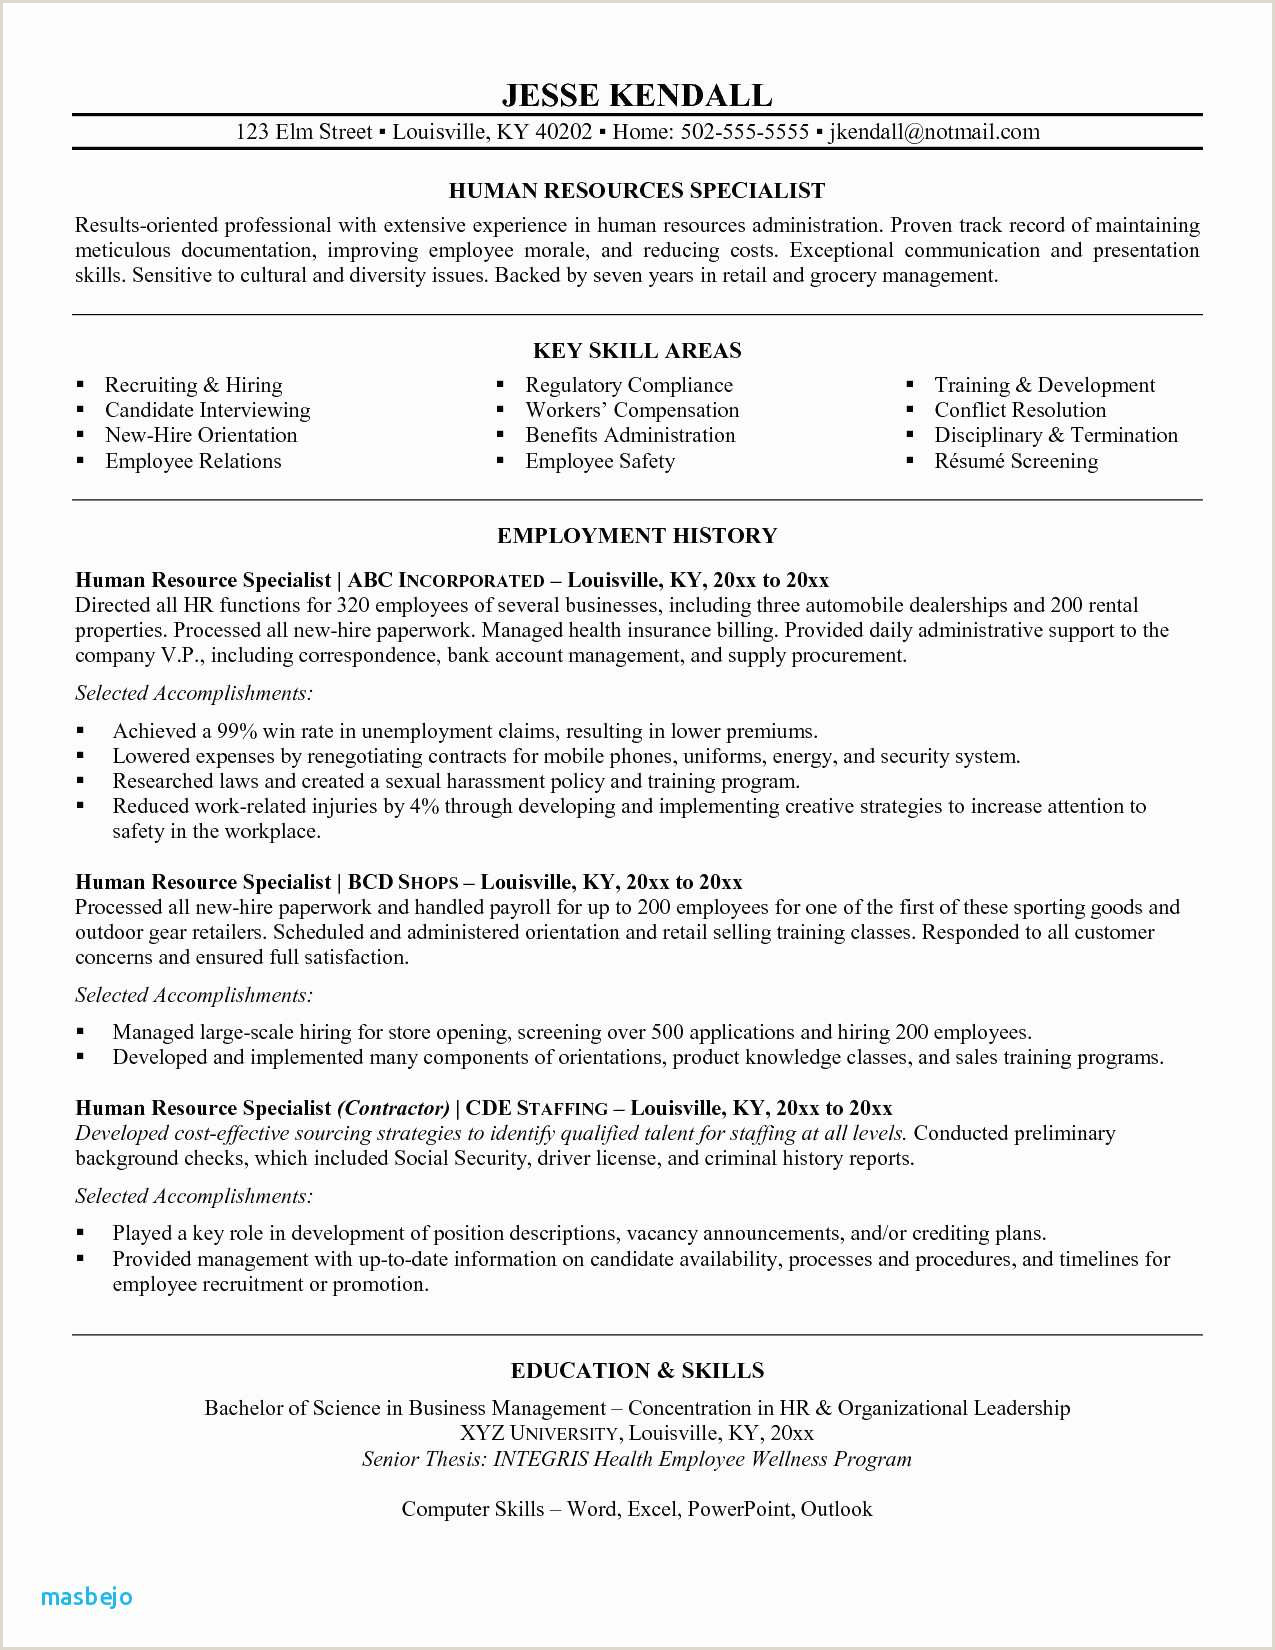 pliance ficer Resume Template Letter Mendation Example